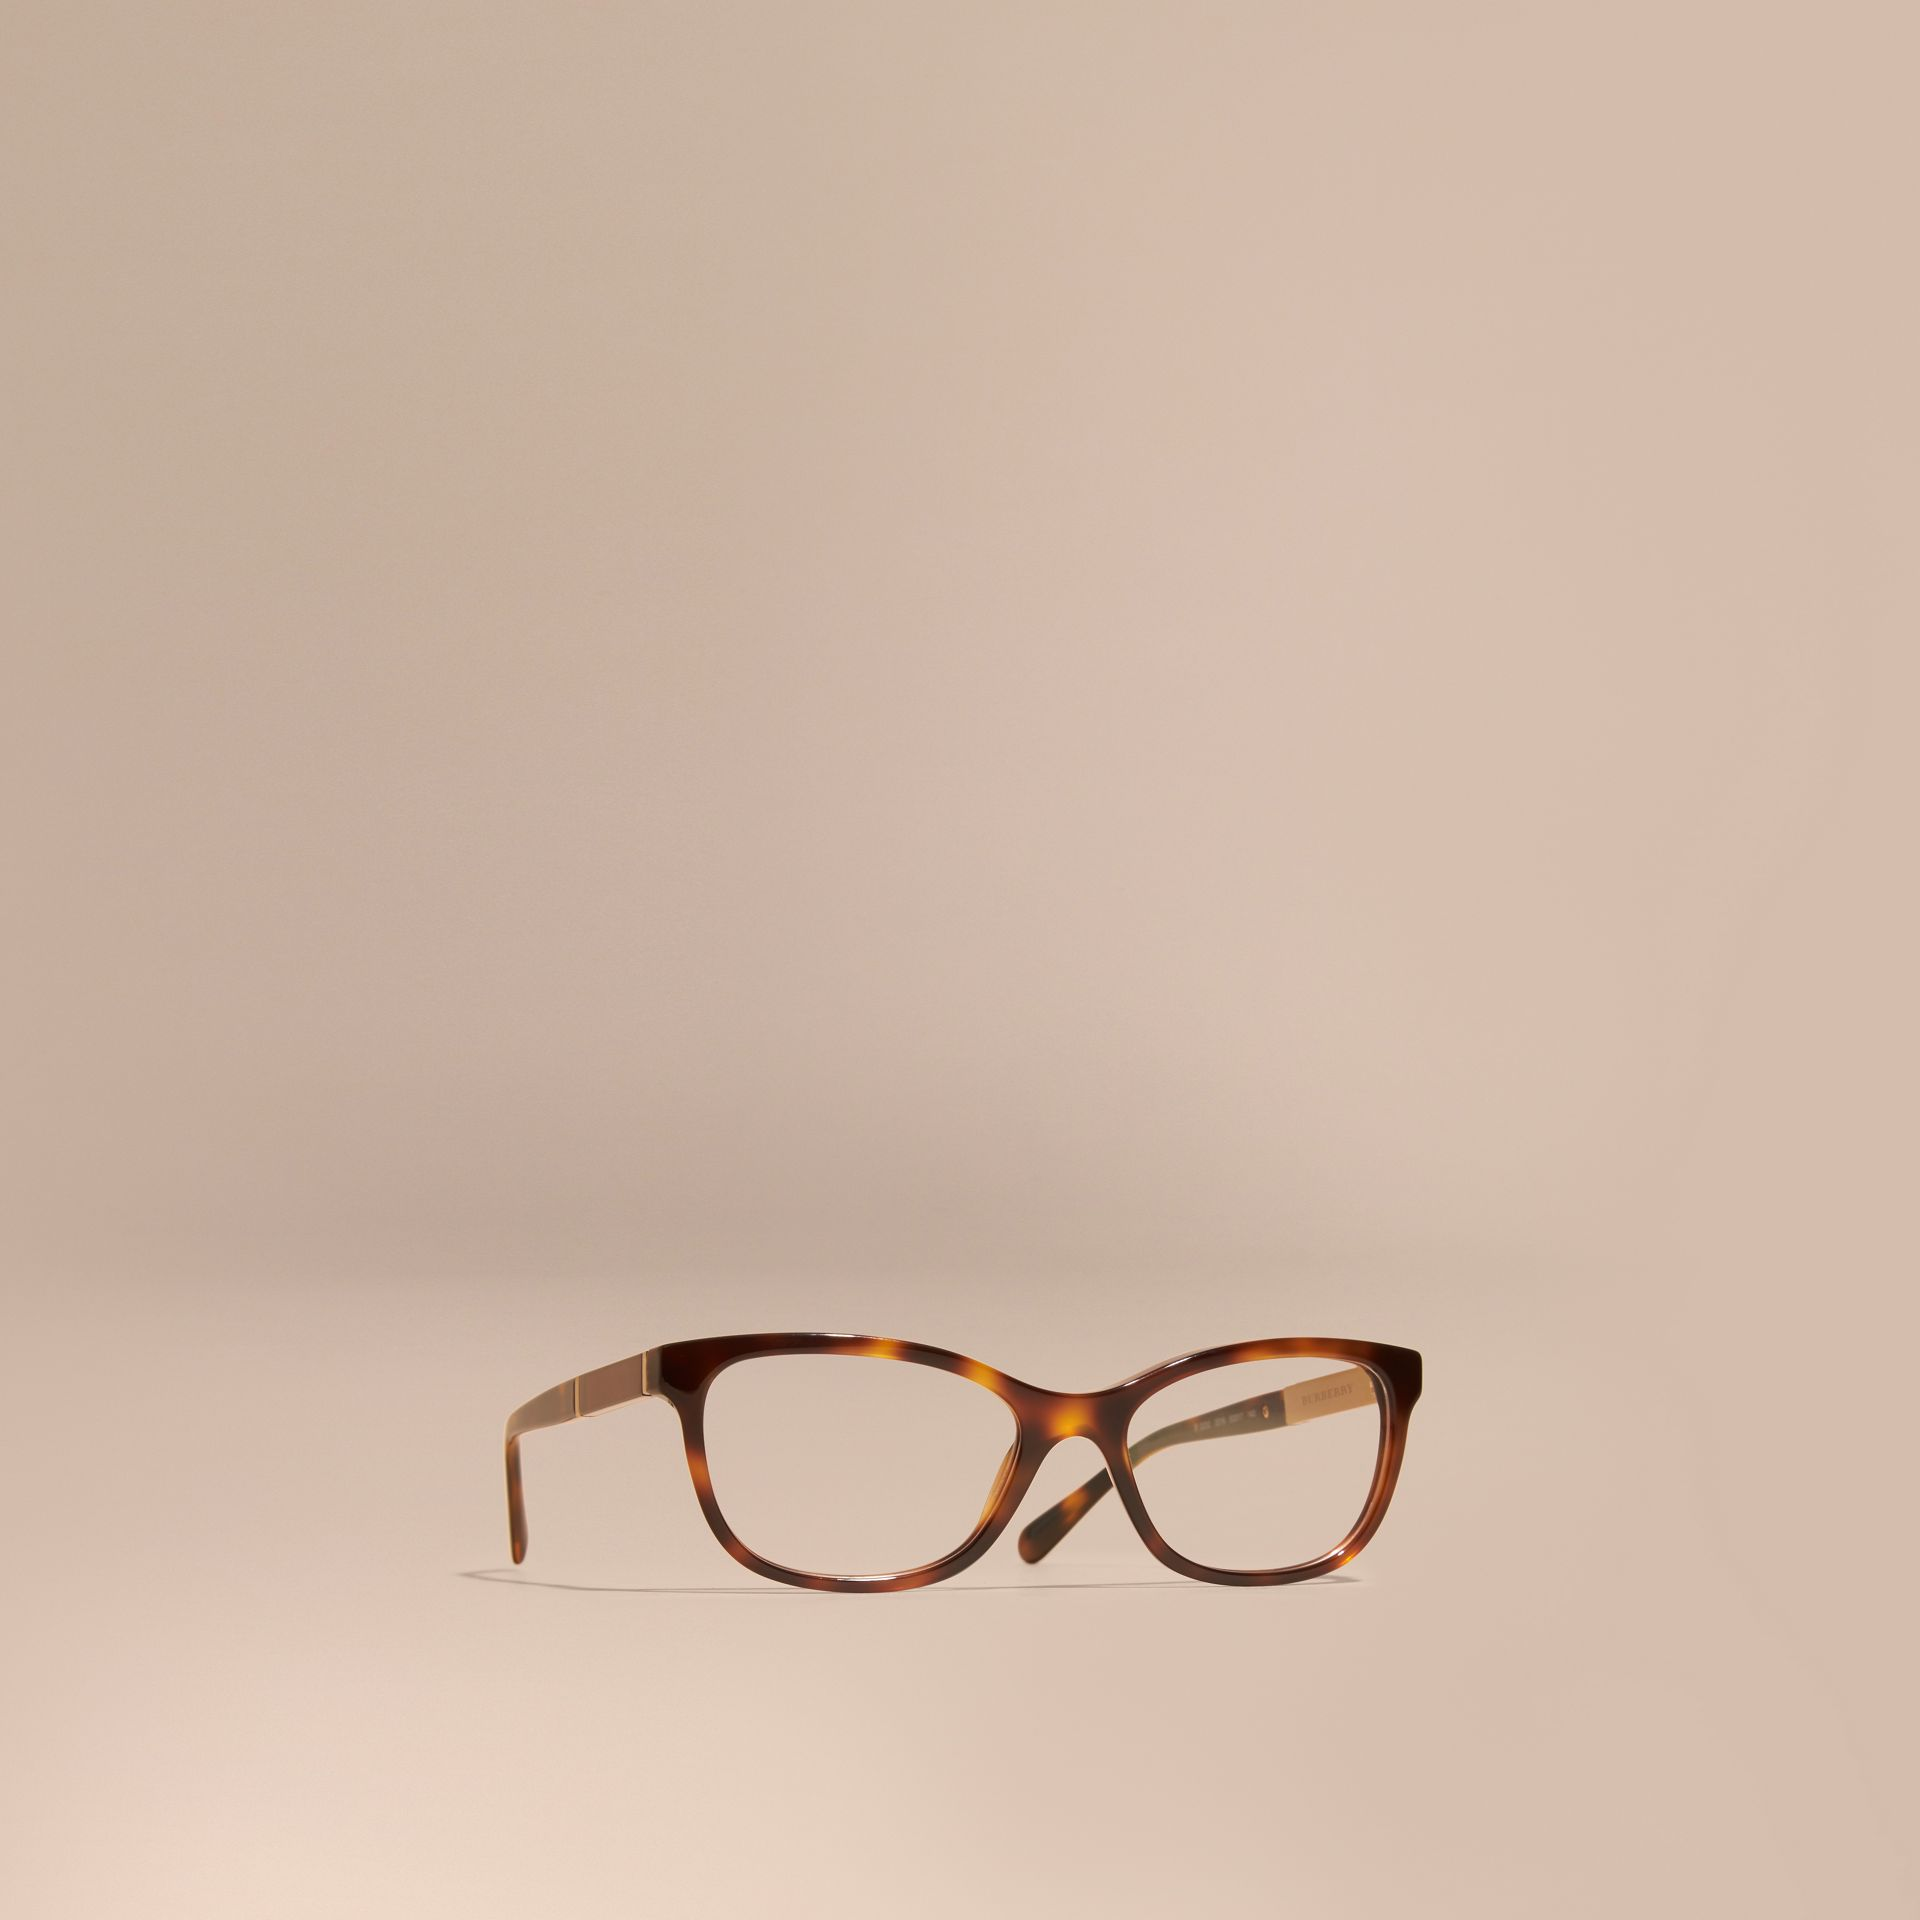 Light russet brown Check Detail Oval Optical Frames Light Russet Brown - gallery image 1